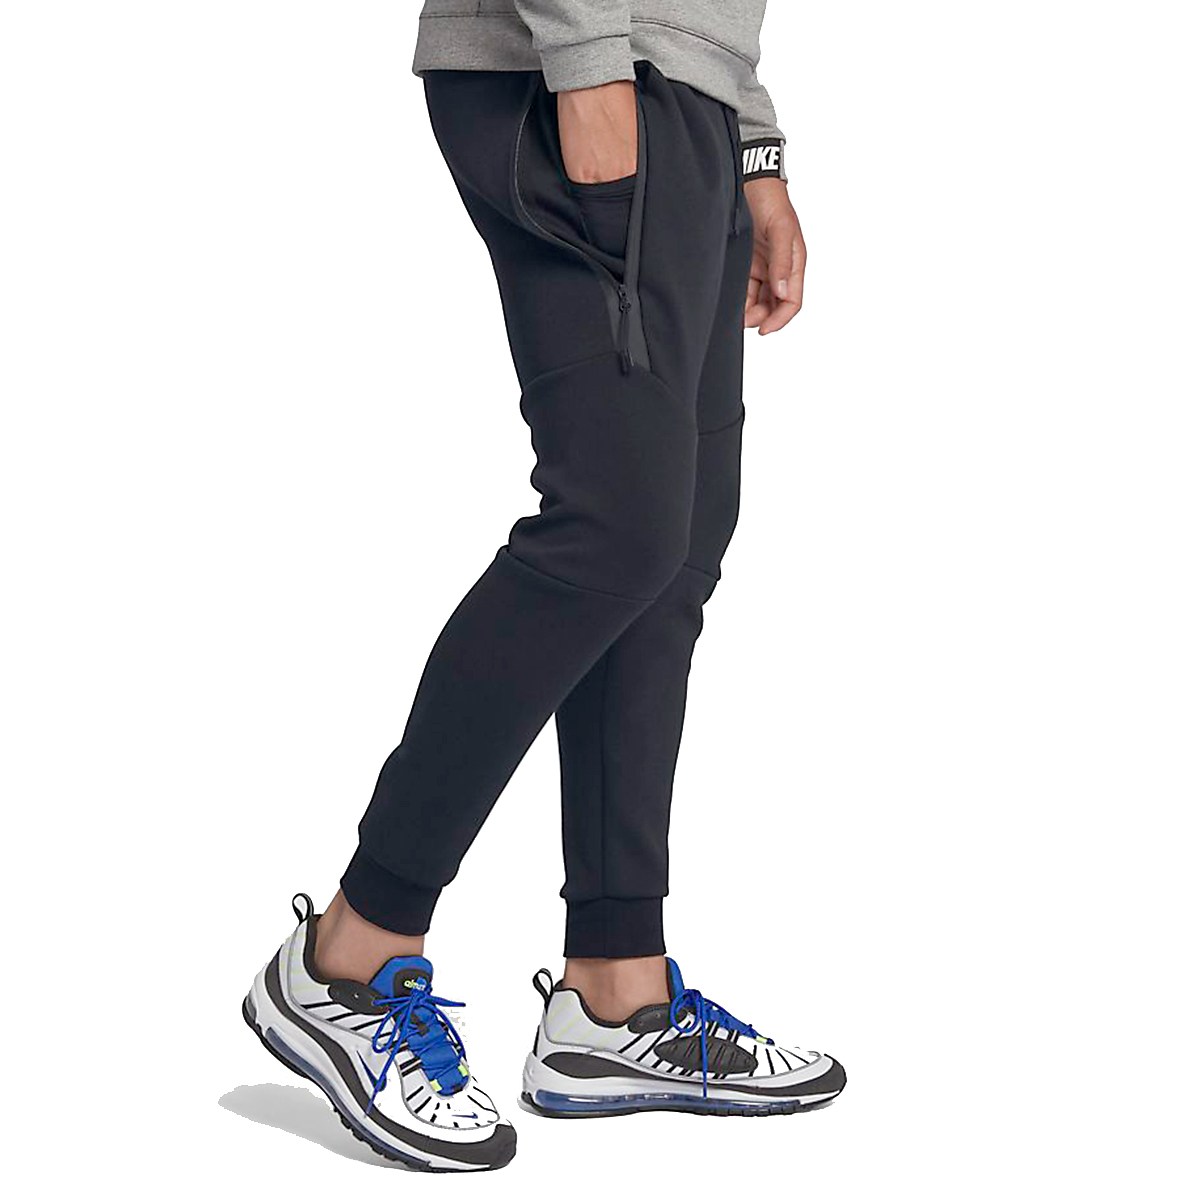 Men's Nike Tech Fleece Jogger, , large, image 2